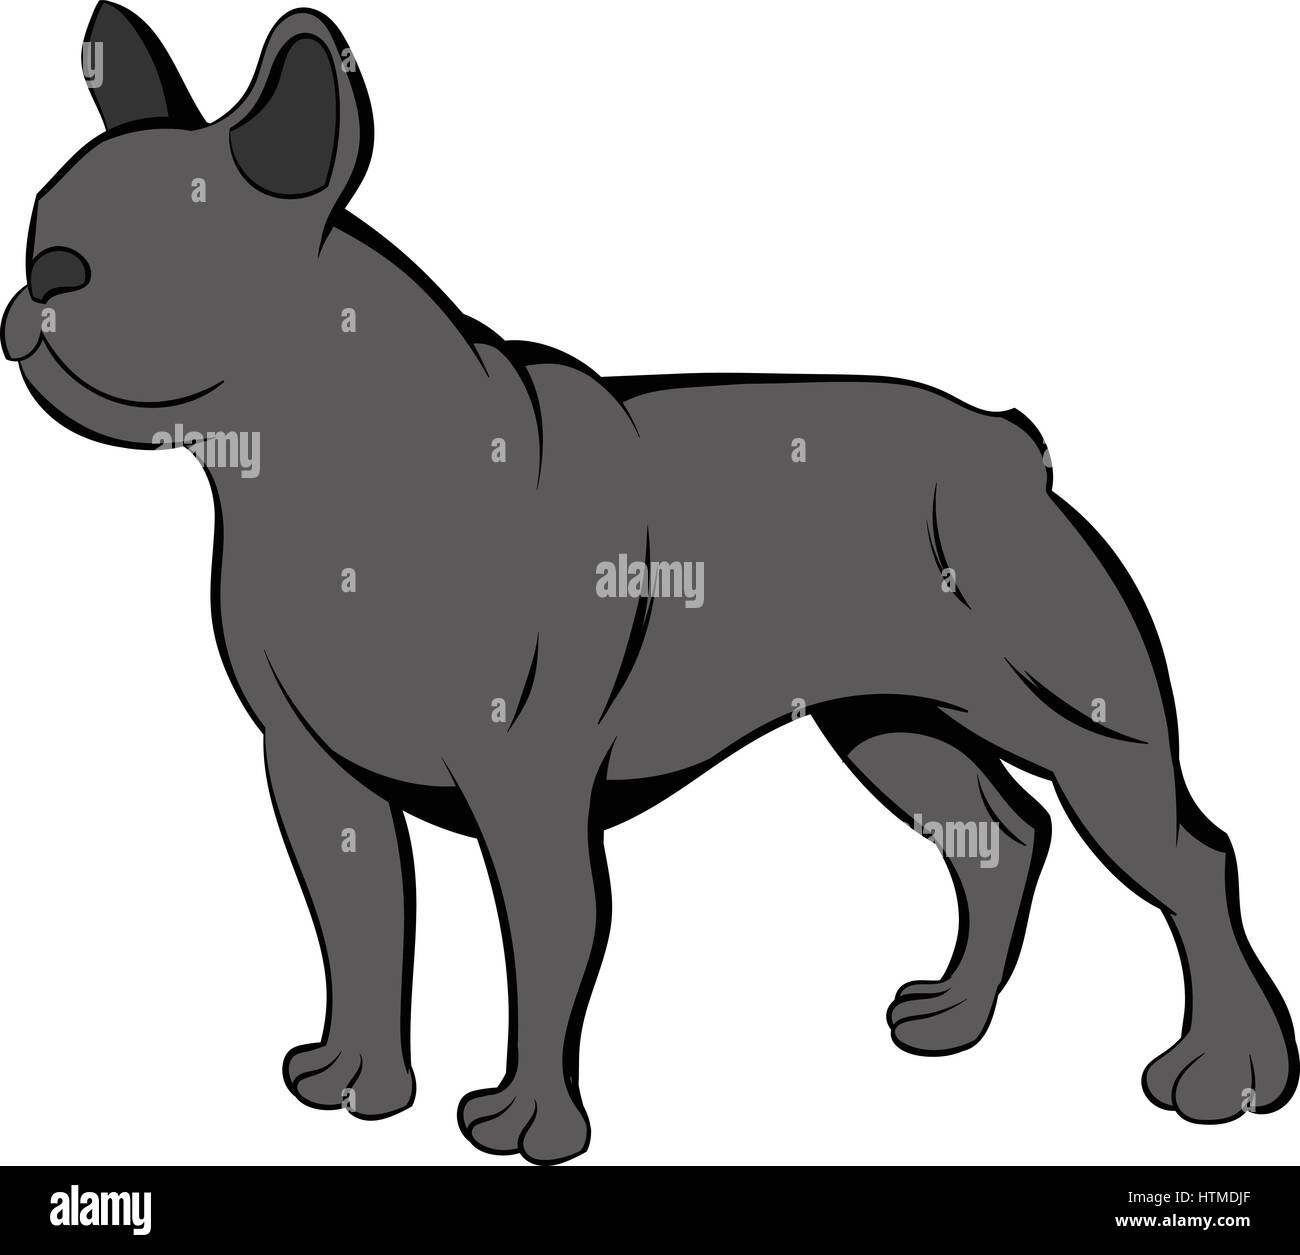 French Bulldog Icon Cartoon Stock Vector Art Illustration Vector